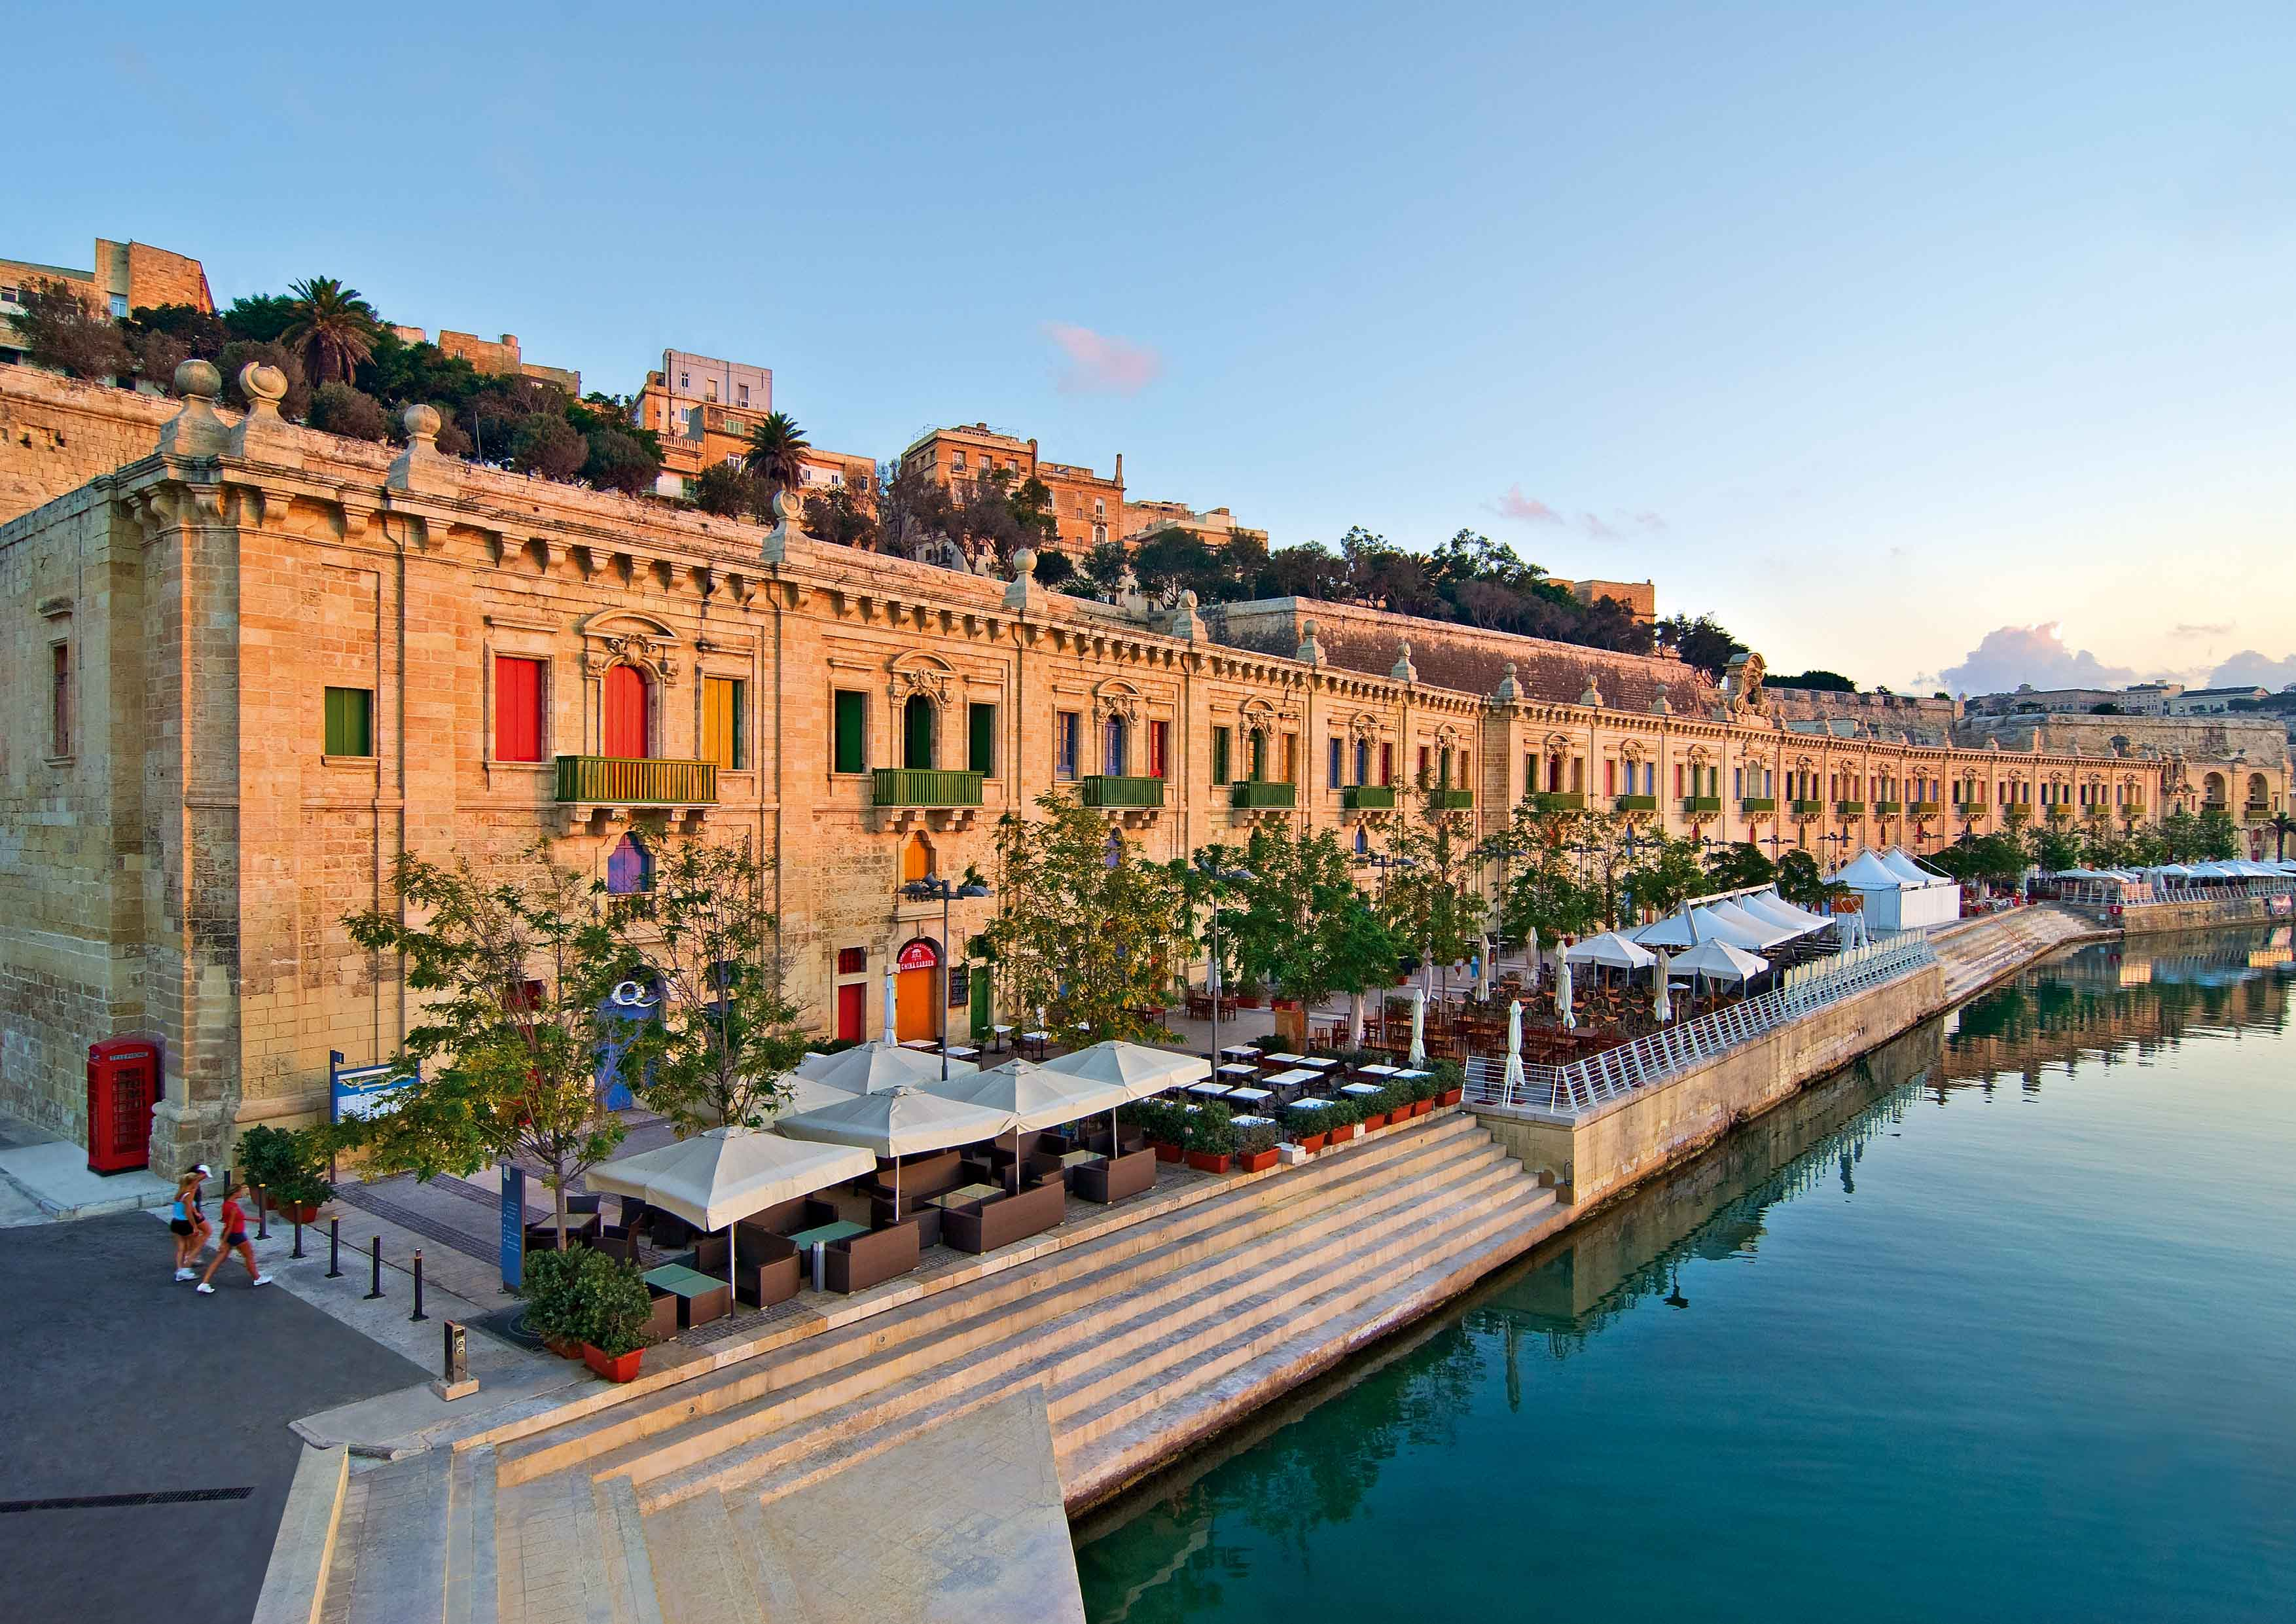 Valletta - Best City Break Destination